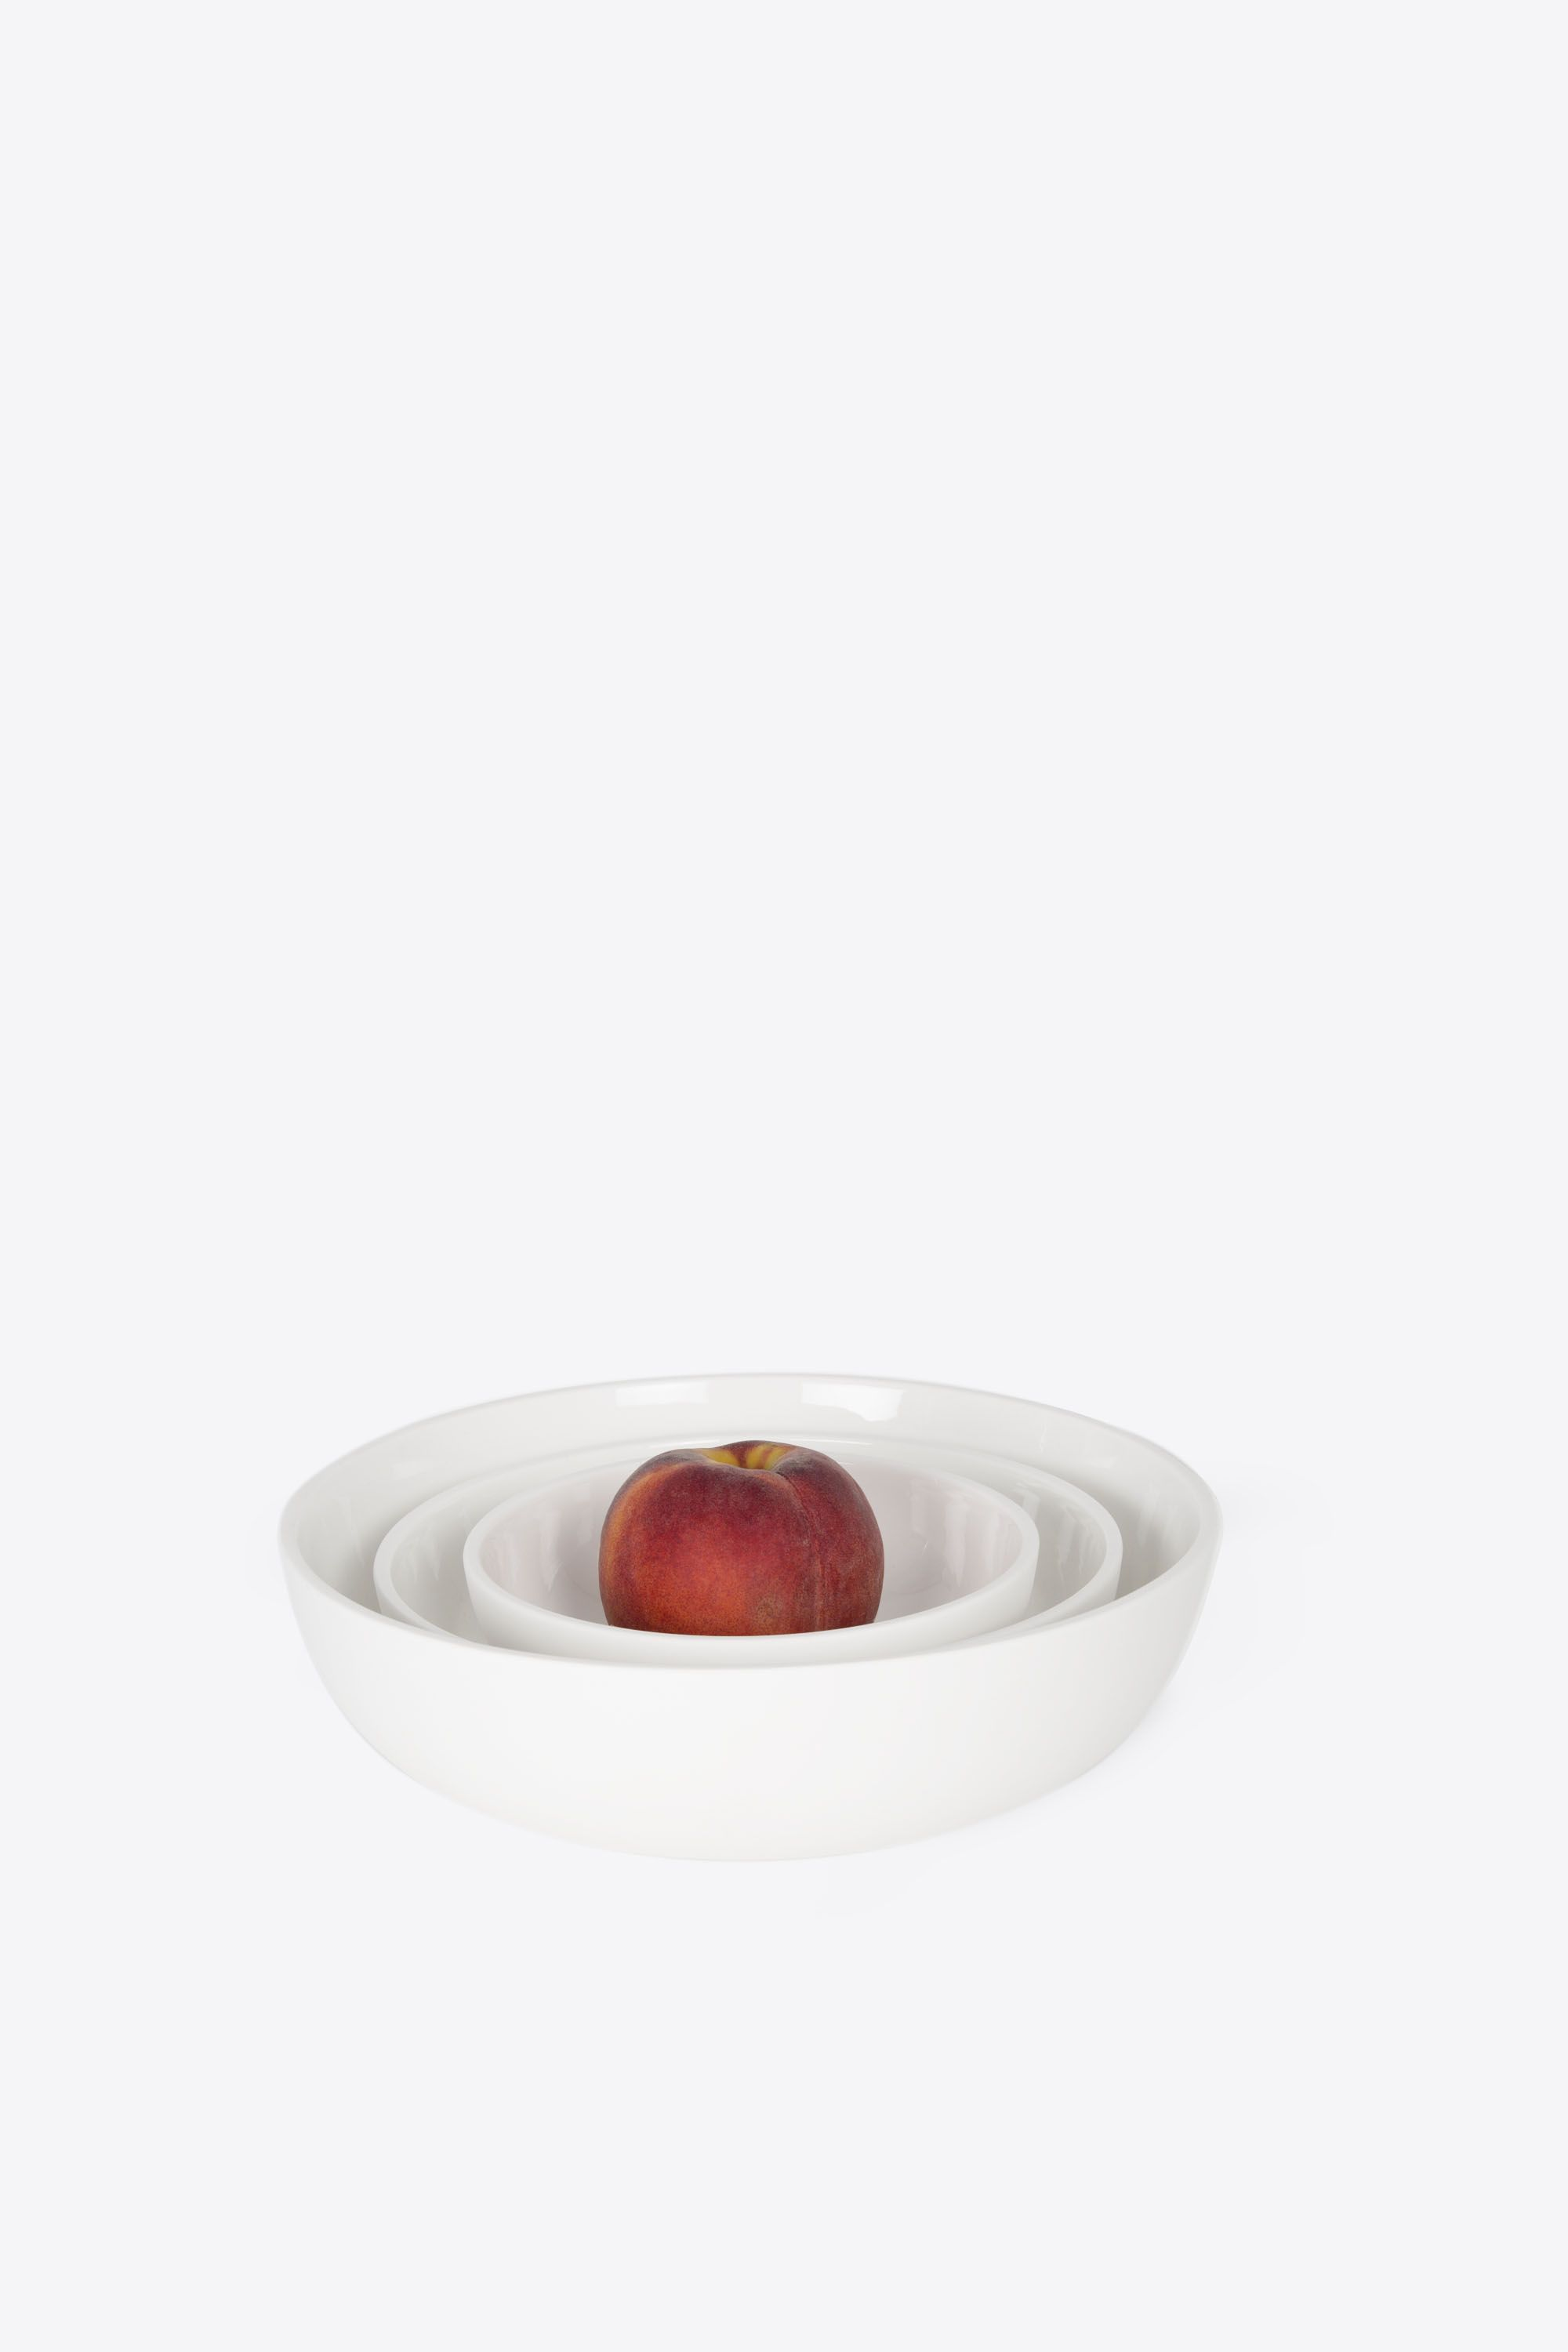 Medium Bowl 1871 White 2